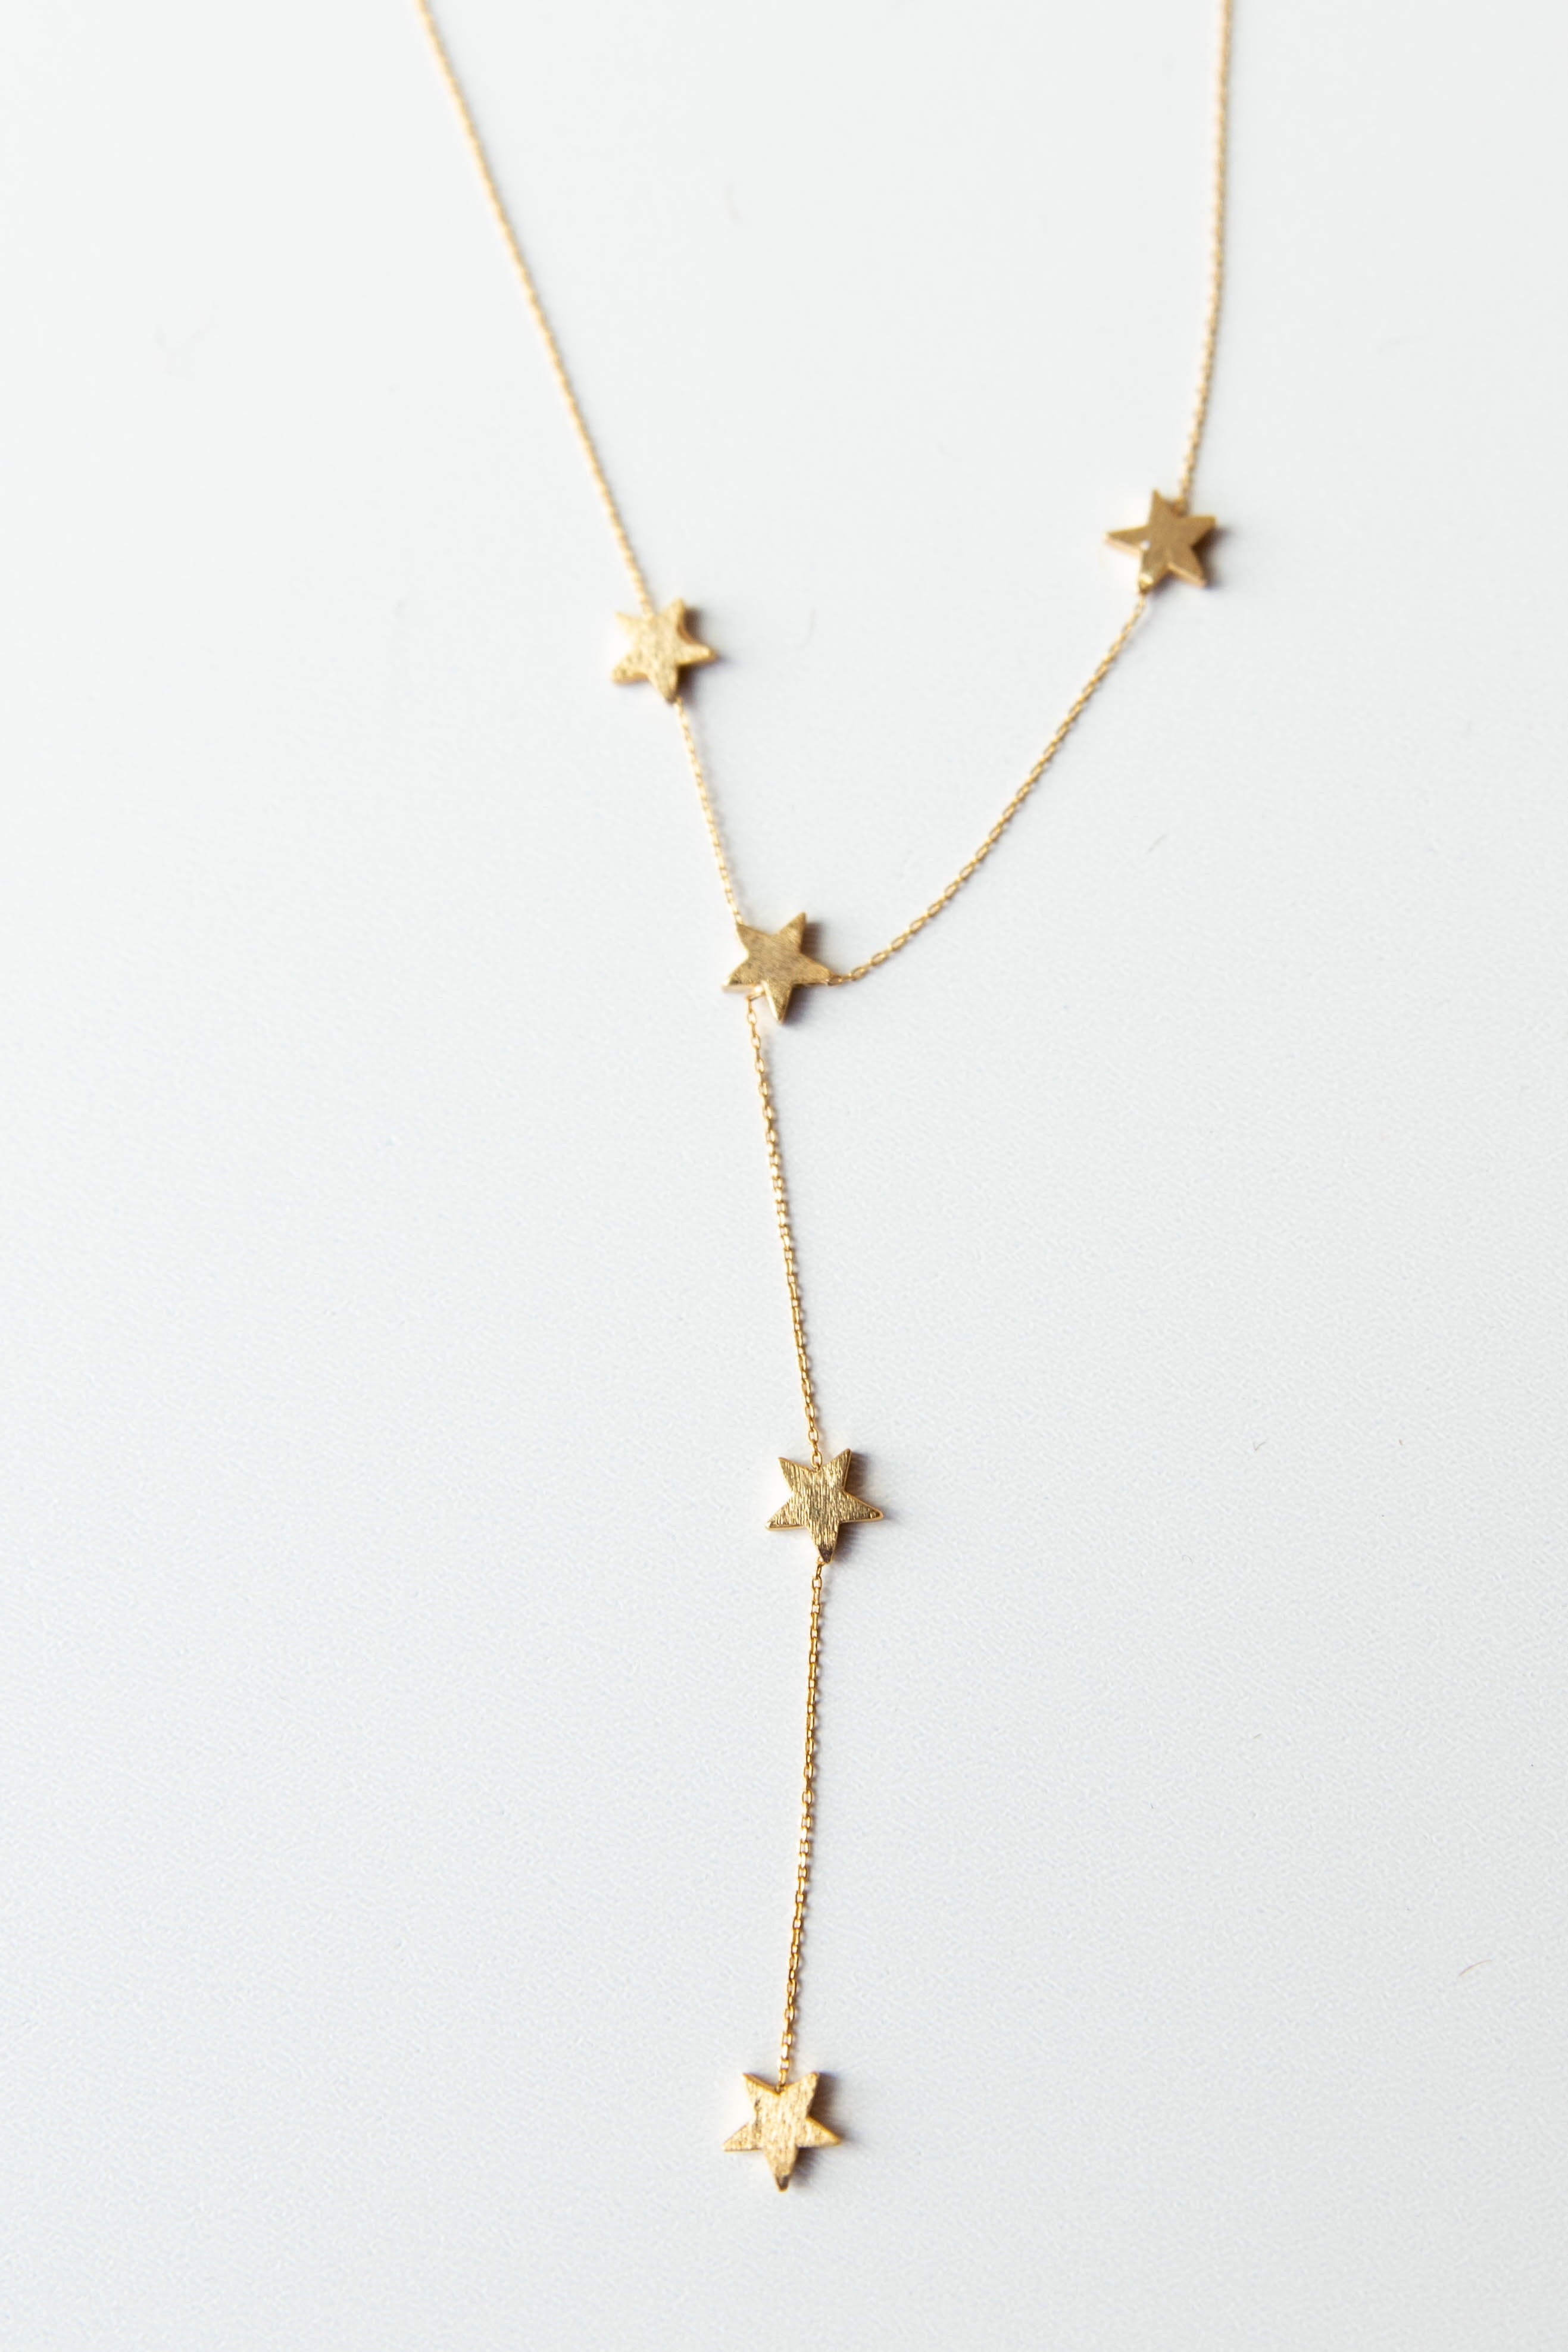 [shop name], starbright necklace